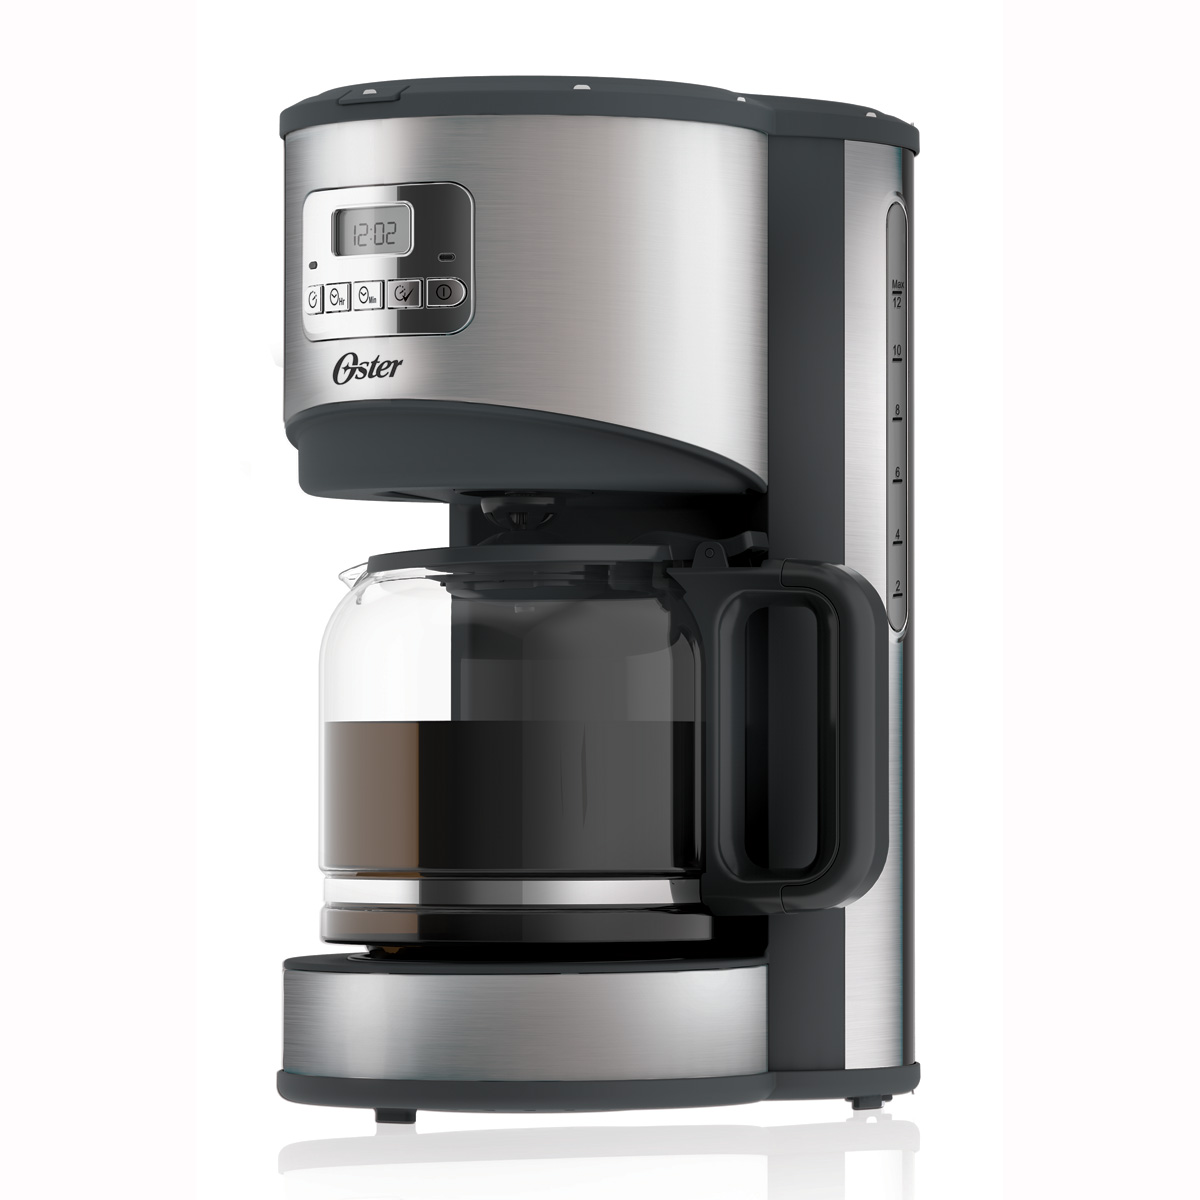 Oster 12-Cup Programmable Coffee Maker, Stainless Steel BVSTAD036-033 Oster Canada